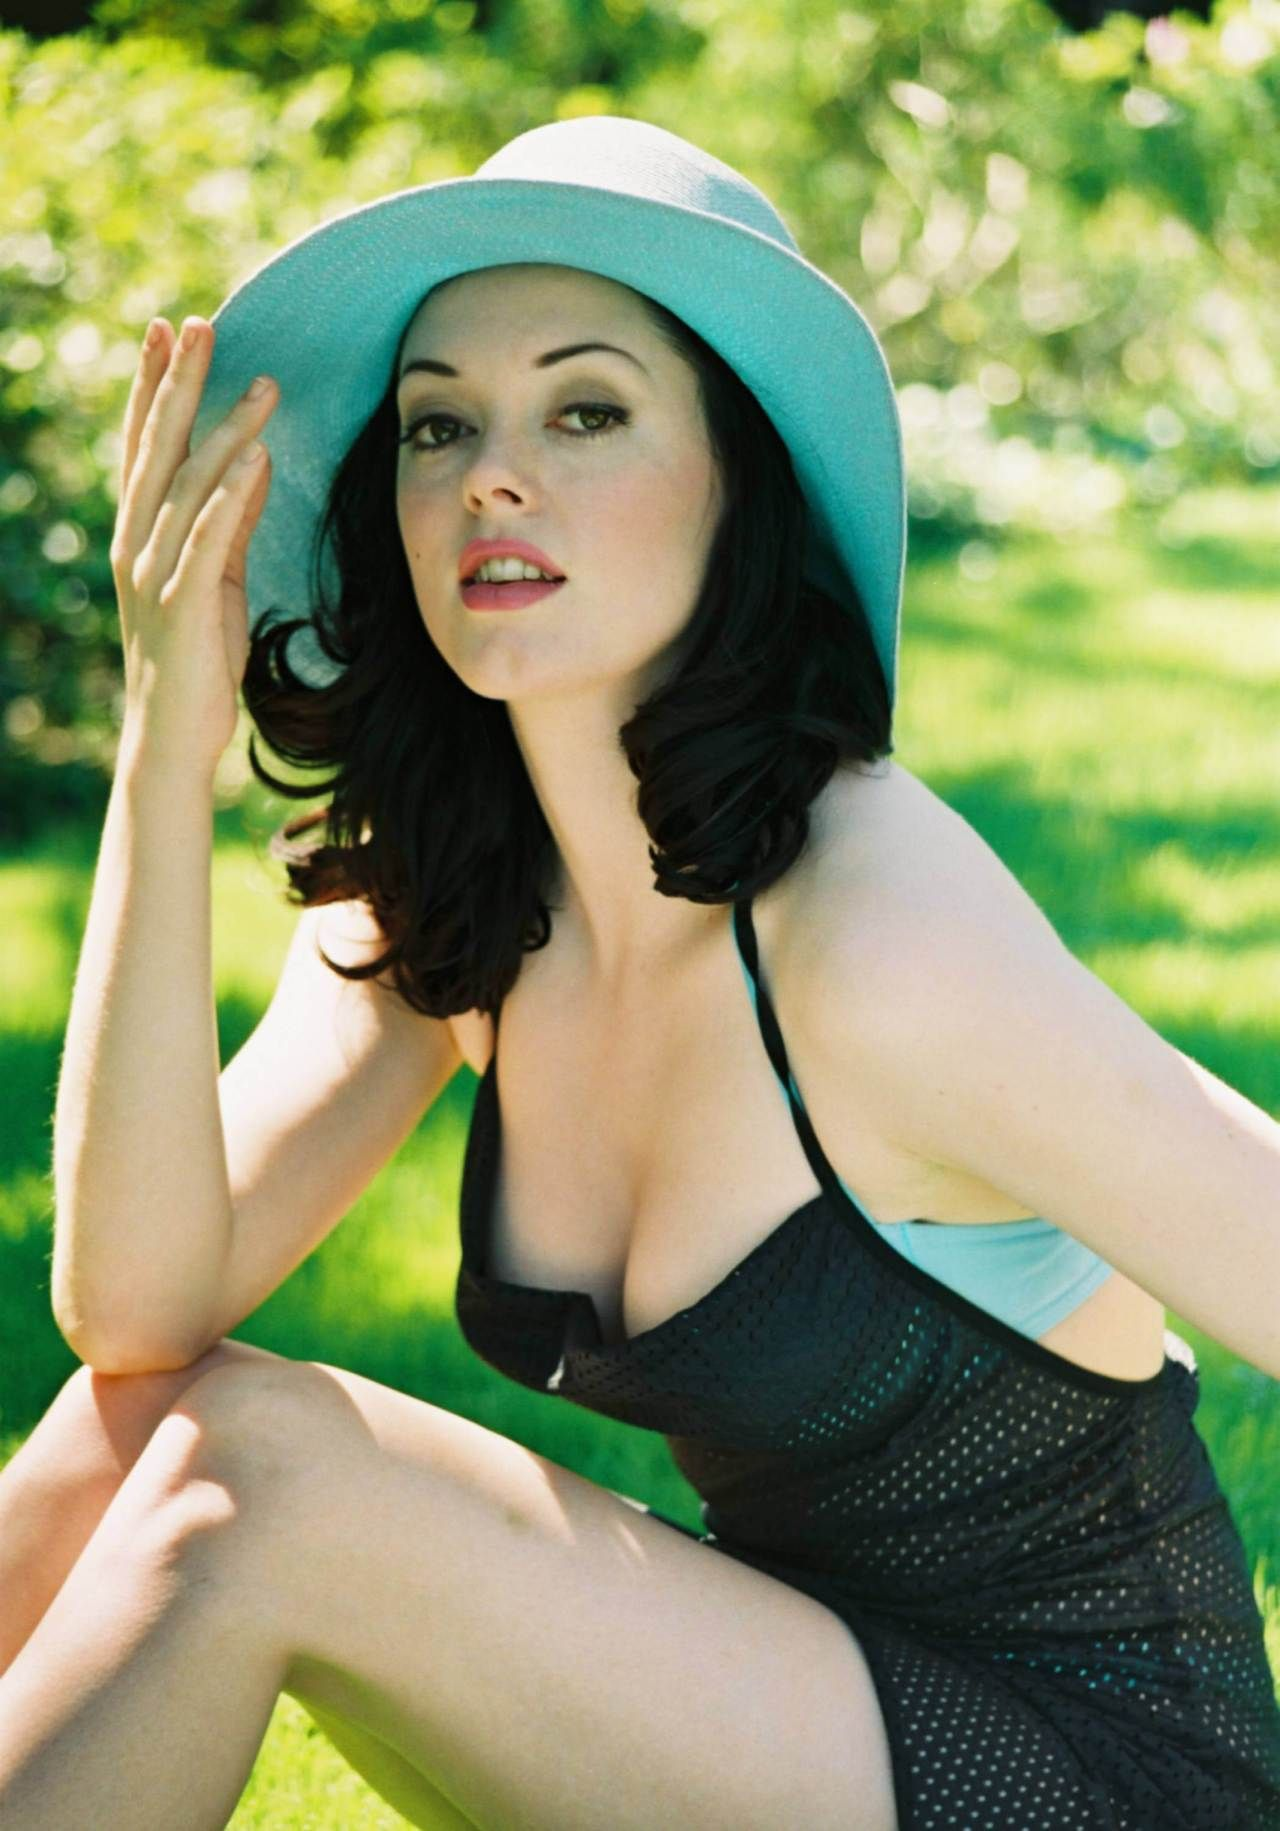 best rose mcgowan images on pinterest beautiful women celebrity and celebs 1